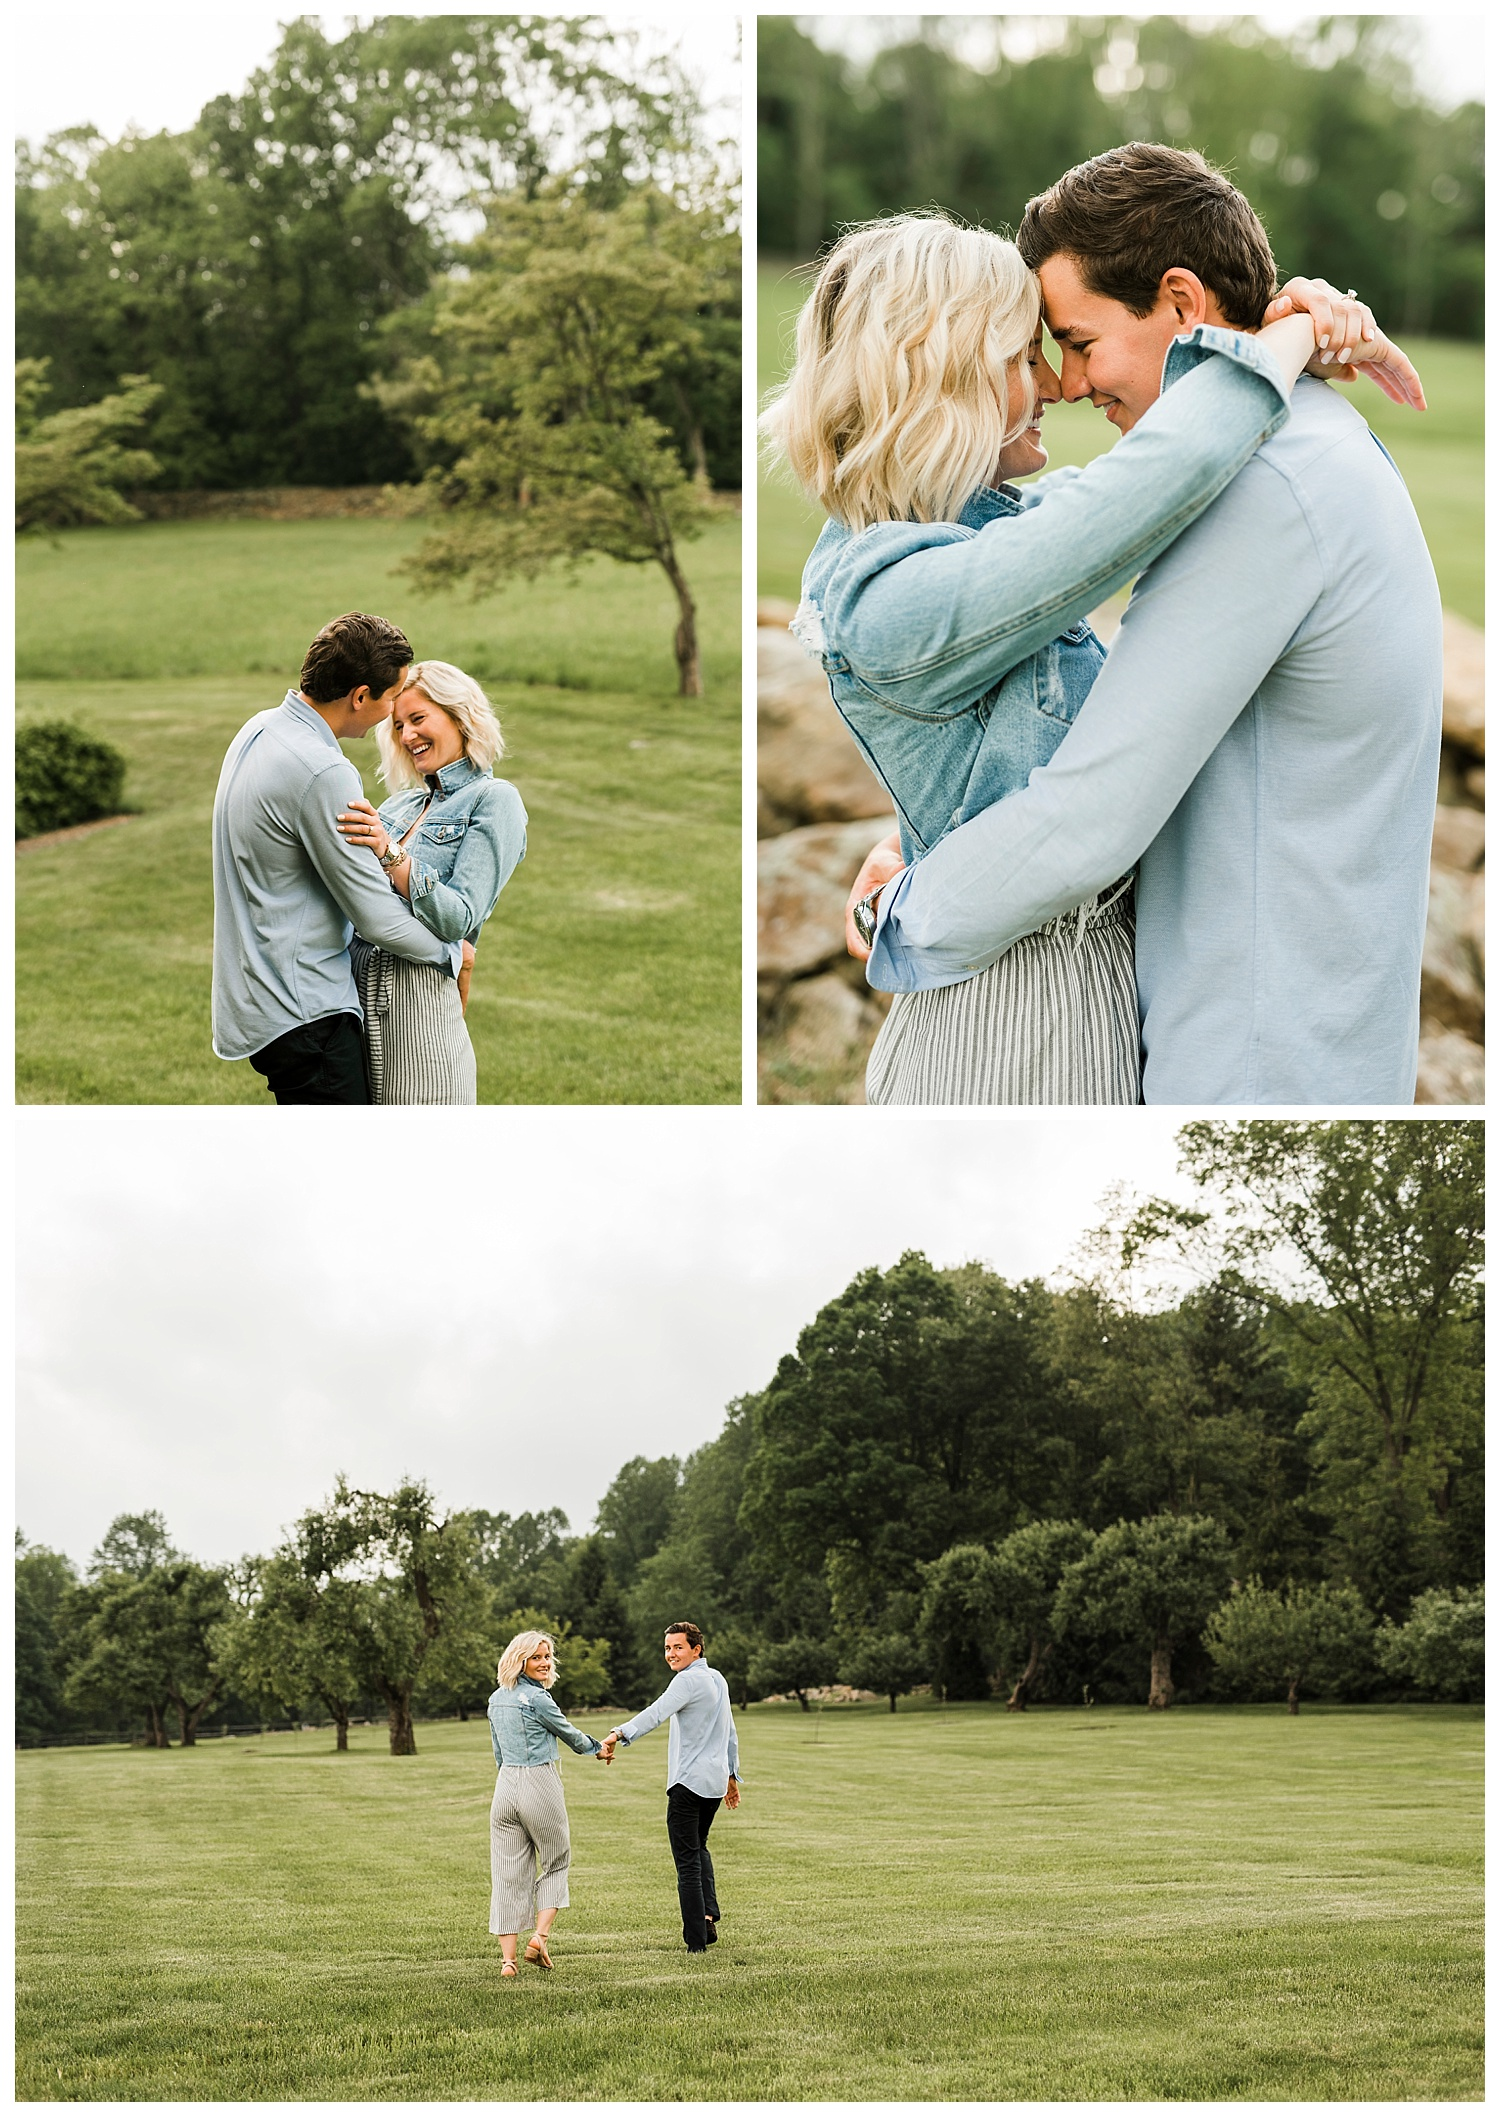 Hunterdon_County_Engagement_Session_Apollo_Fields00.jpg